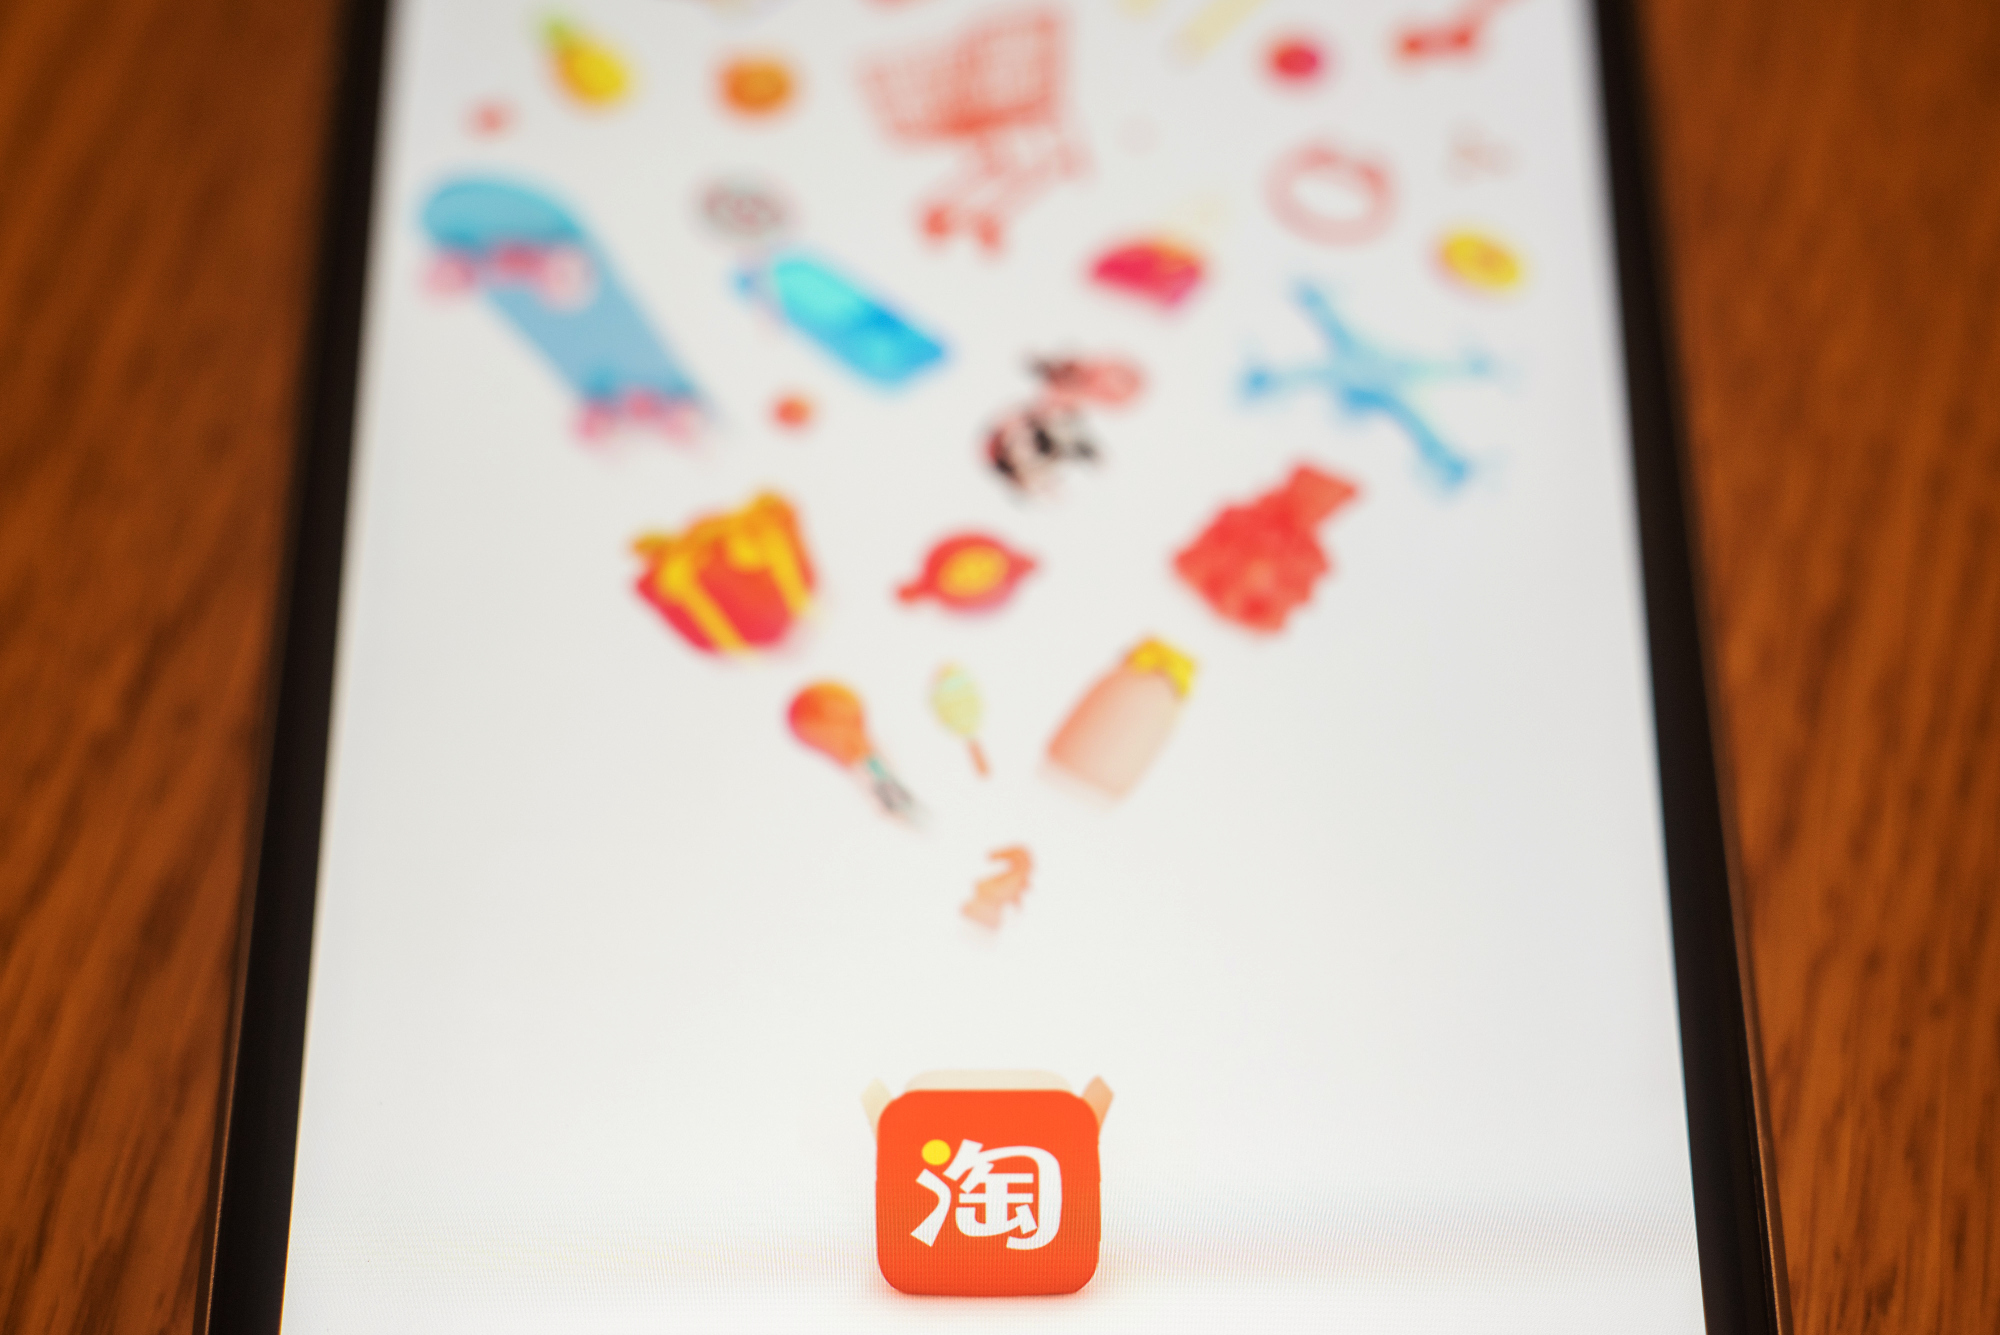 The loading page for Alibaba Group Holding Ltd.'s Taobao application is displayed on an Apple Inc. iPhone in an arranged photograph taken in Hong Kong, China, on Wednesday, July 26, 2017.